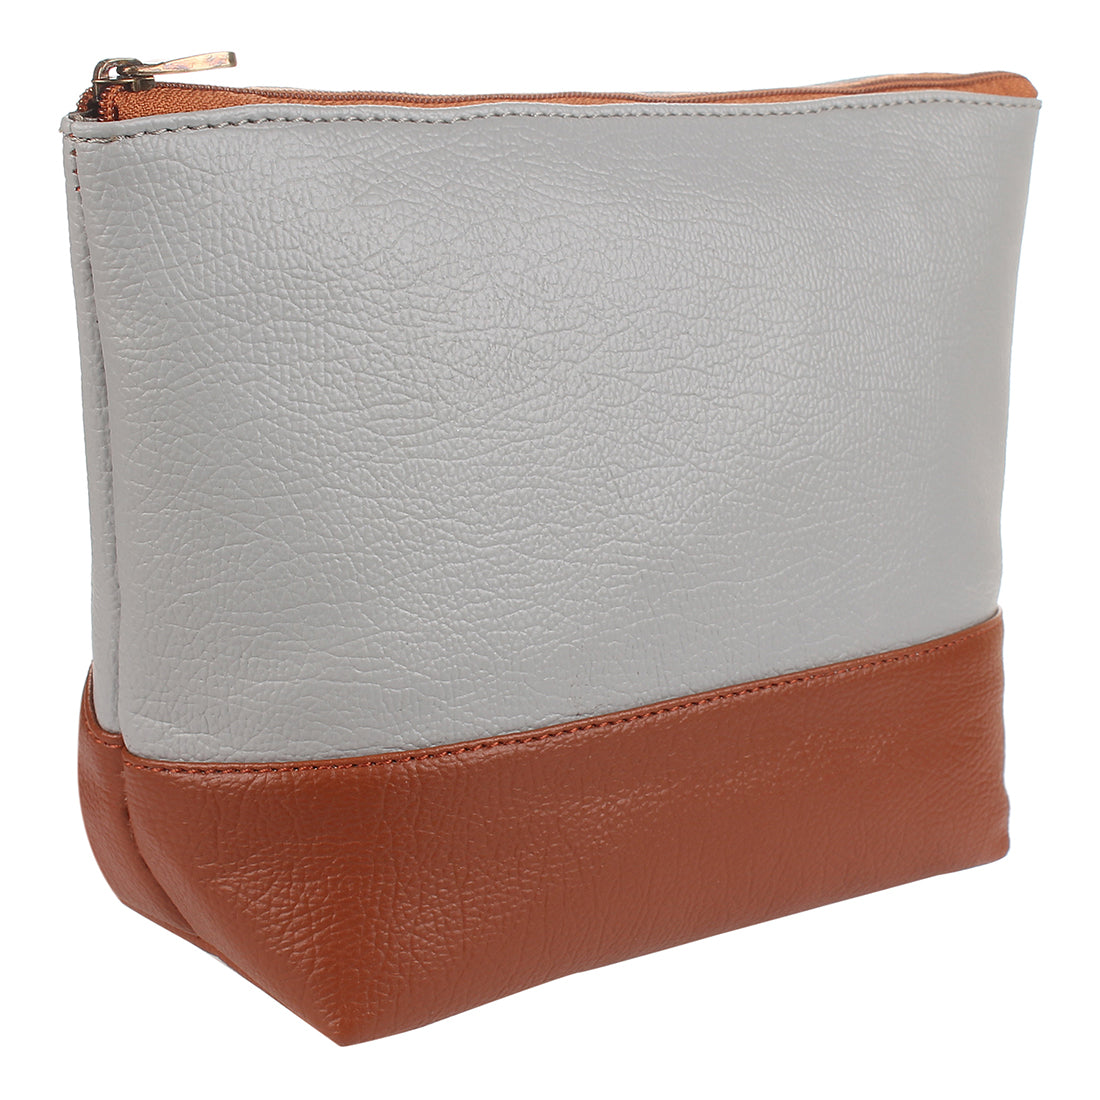 Brown & Grey Color Makeup Pouch